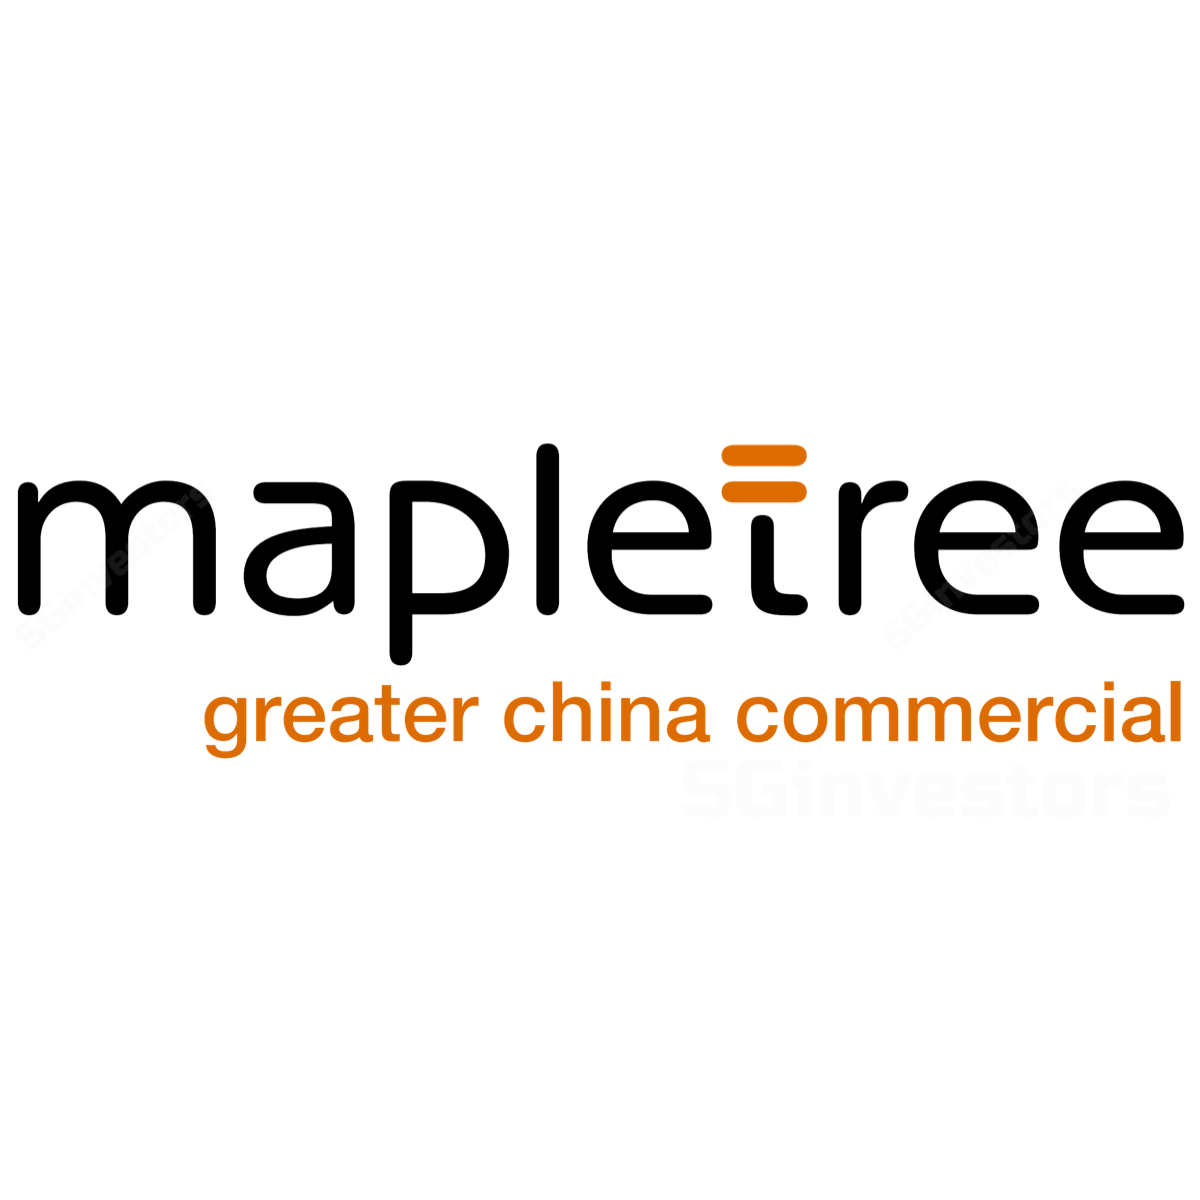 Mapletree Greater China Commercial Trust - DBS Vickers 2017-03-30: Climbing the wall of worry